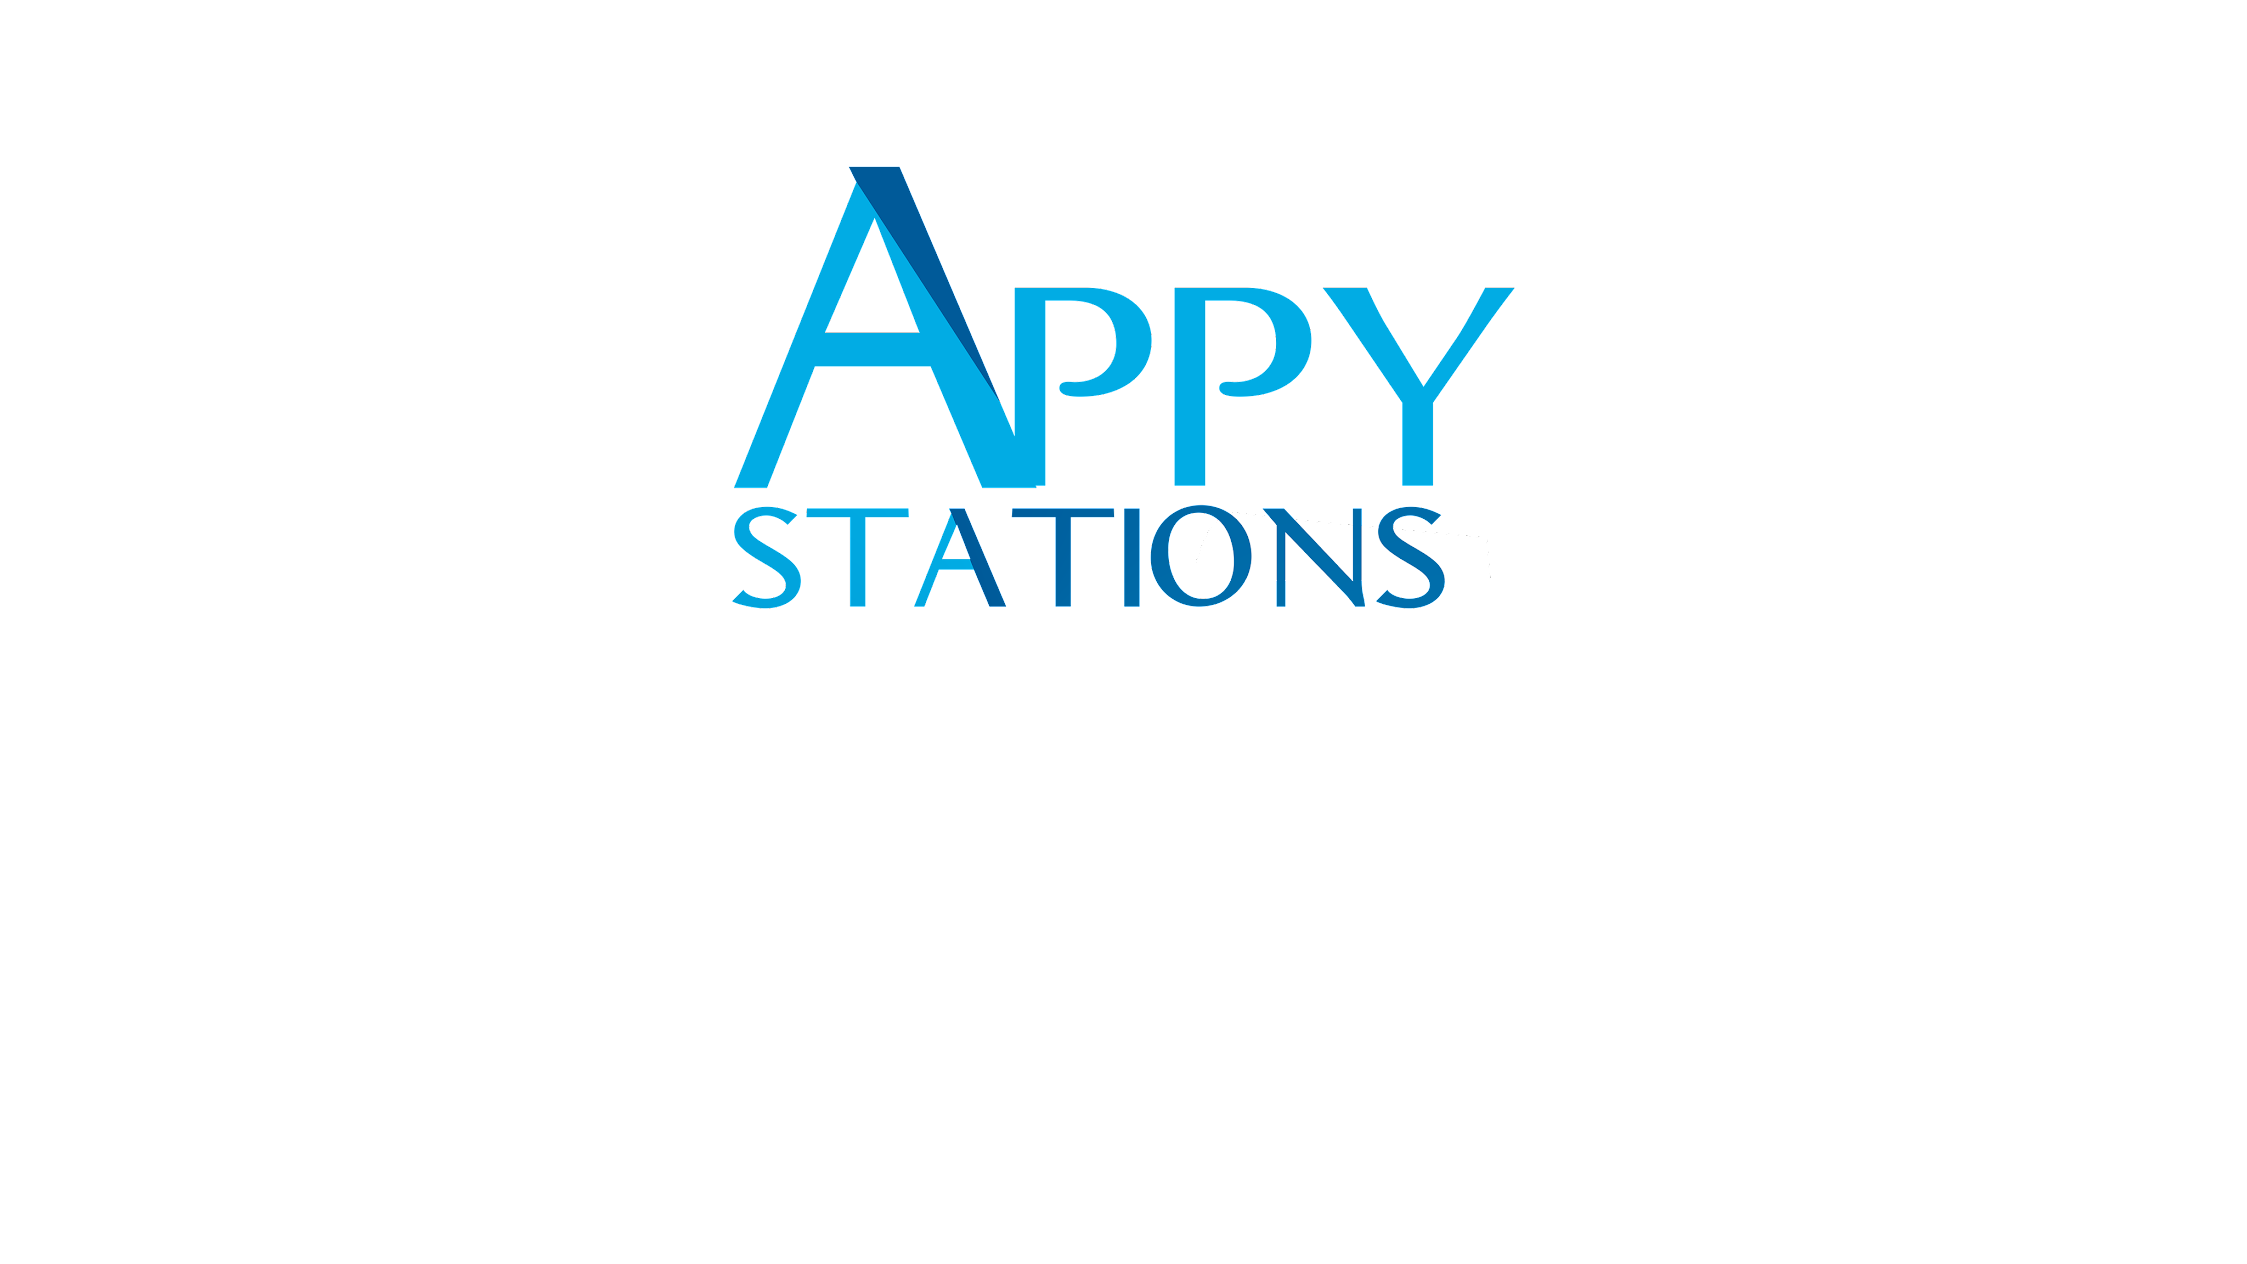 Appy Stations